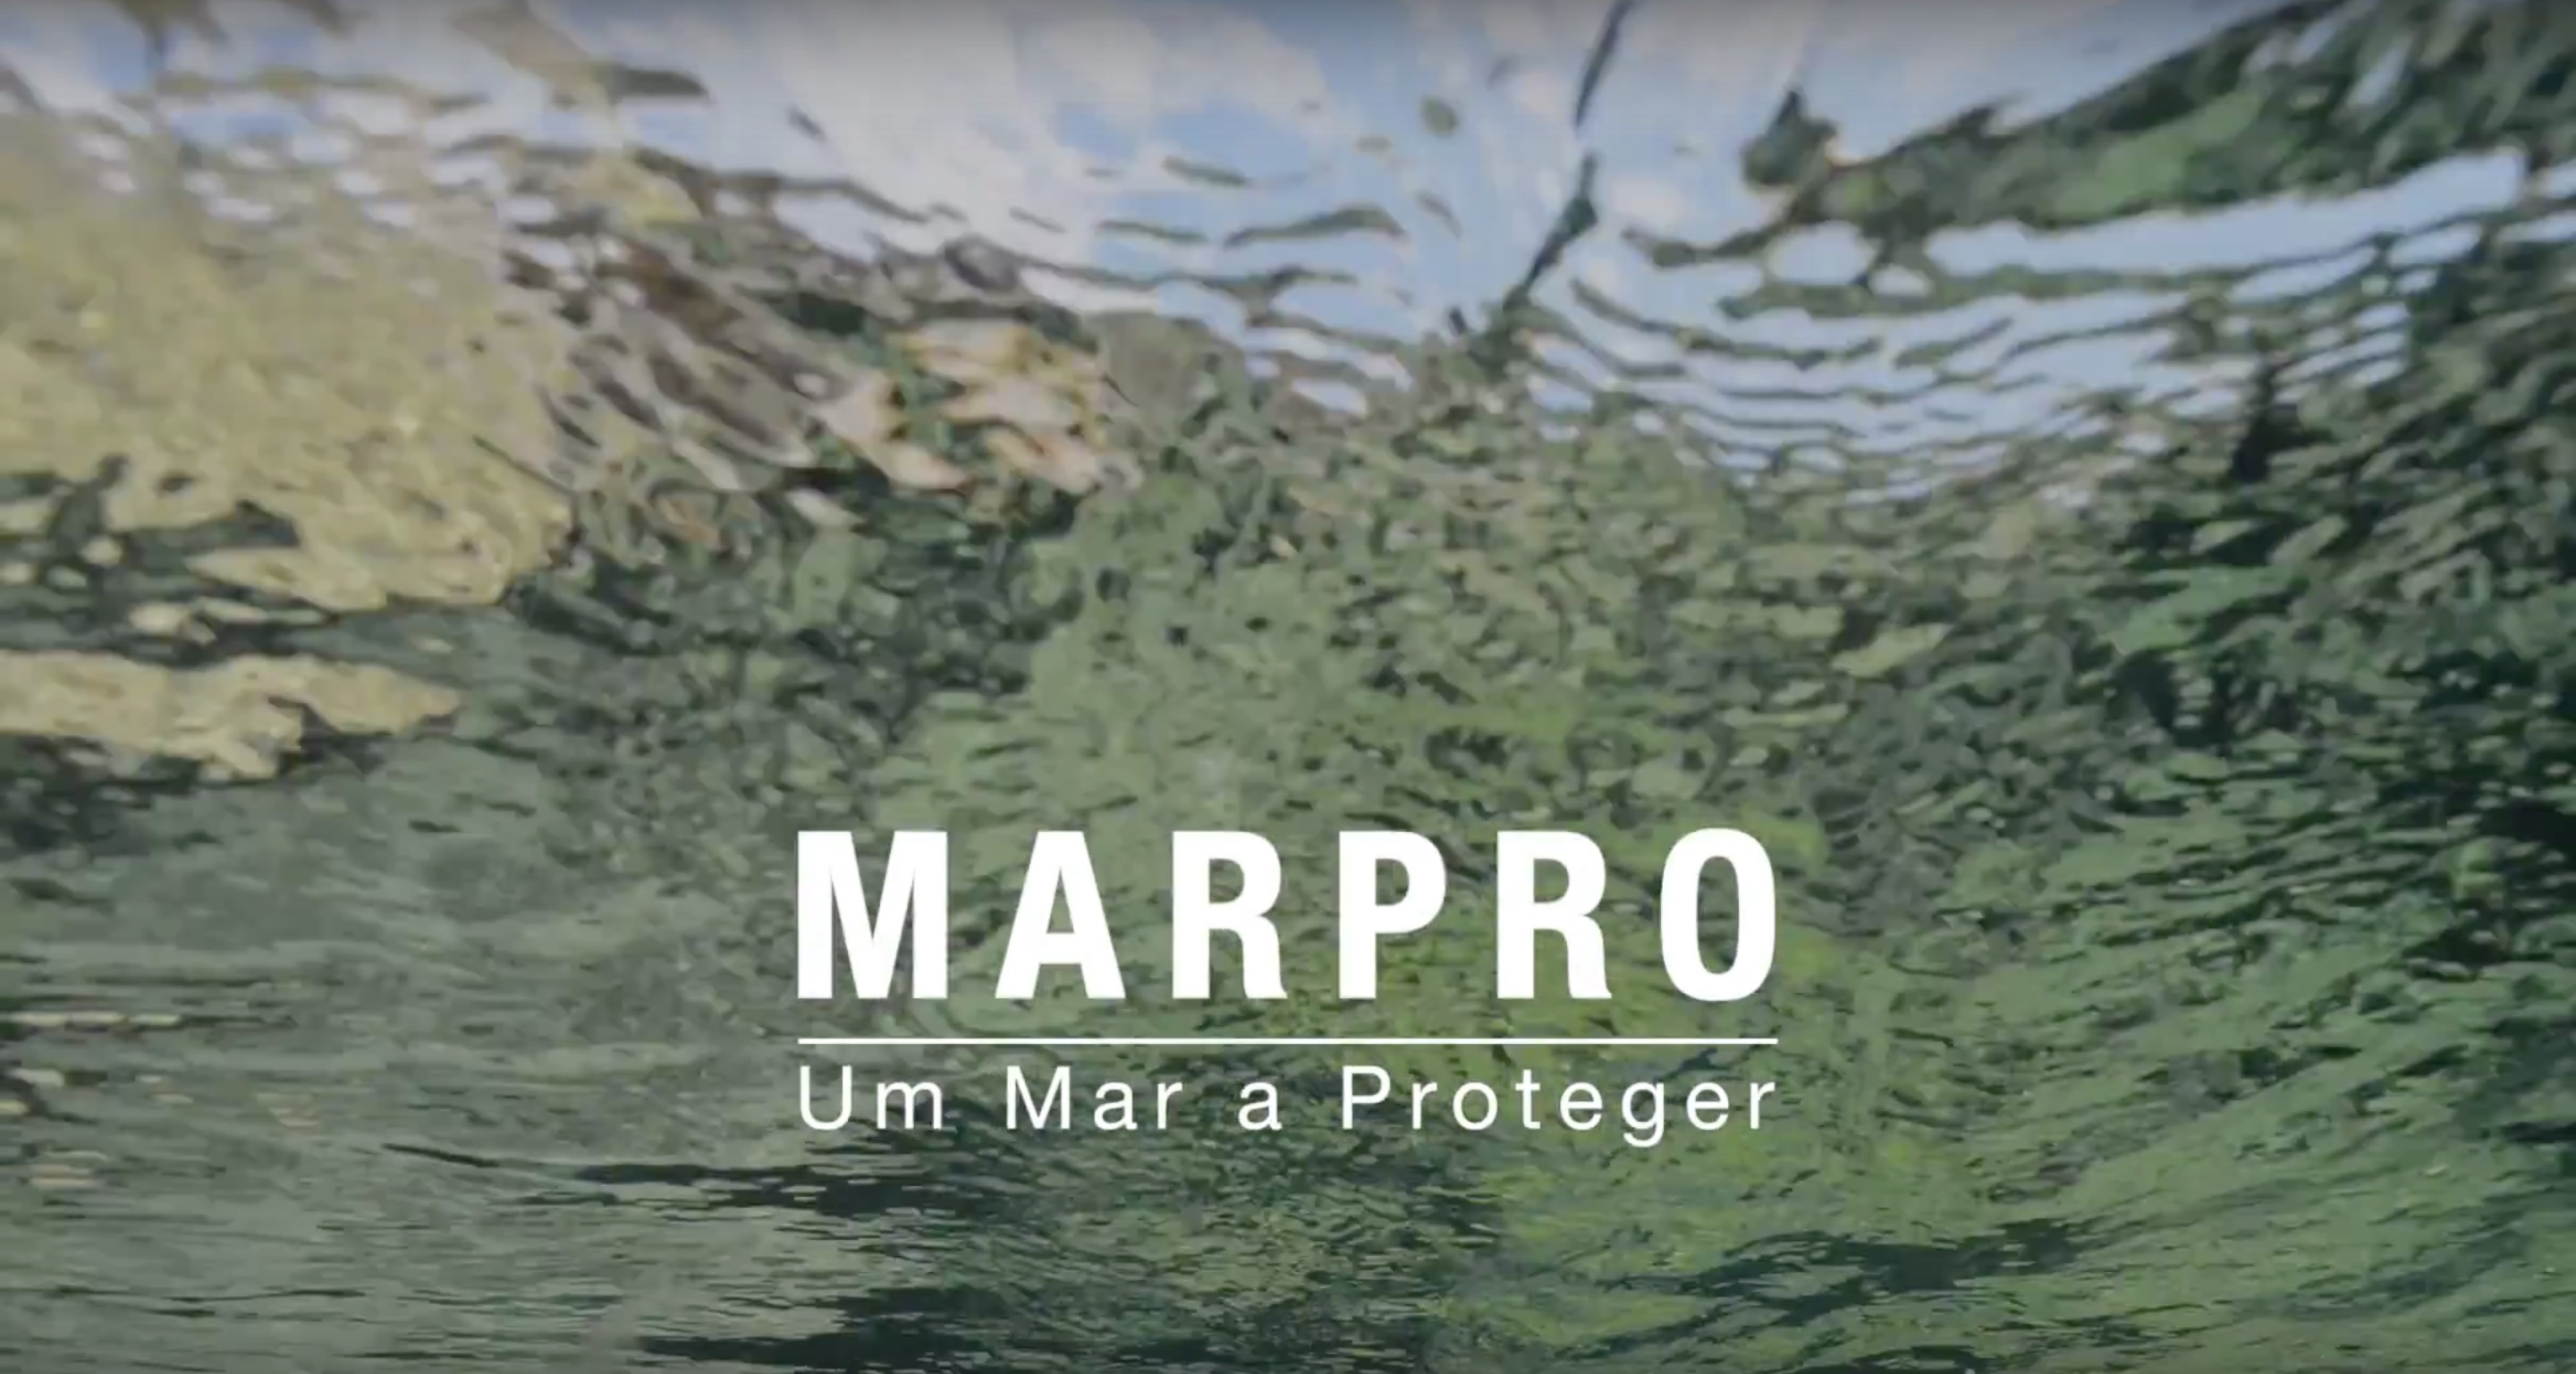 LIFE+ MarPro Documentary: A Sea to Protect